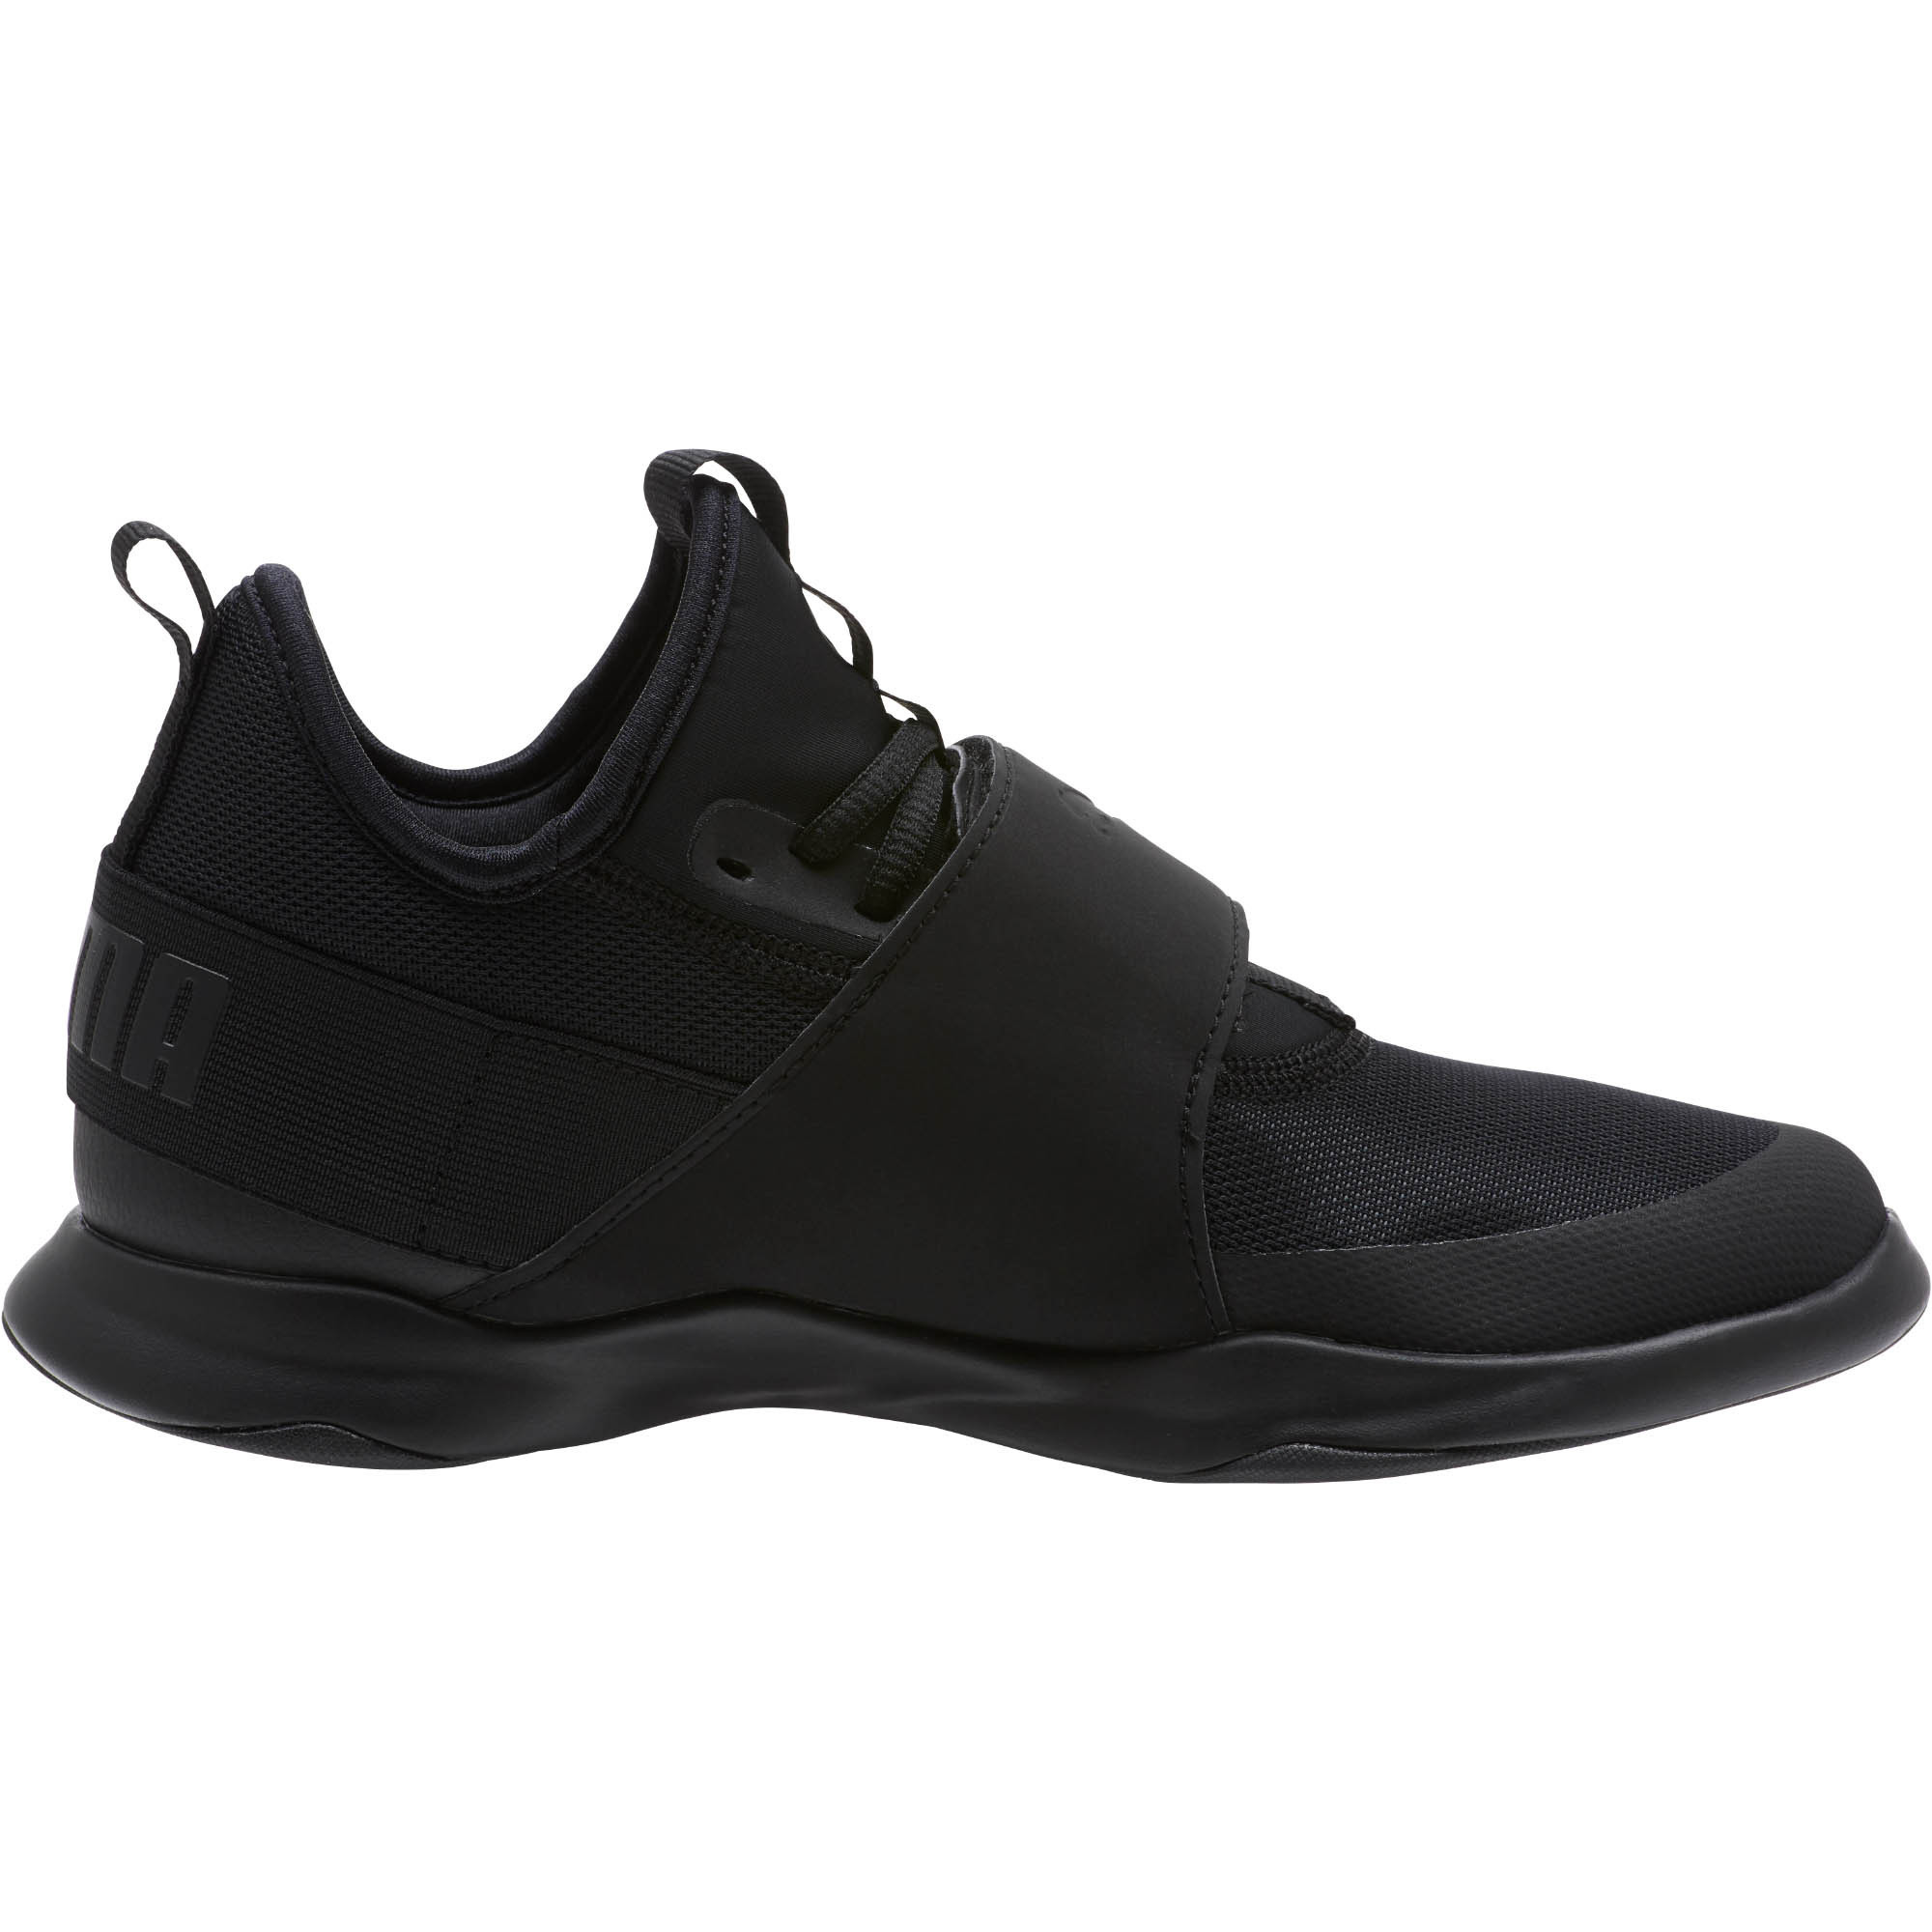 42182807c97 Details about PUMA Dare Trainer Women's Trainers Women Mid Boot Basics